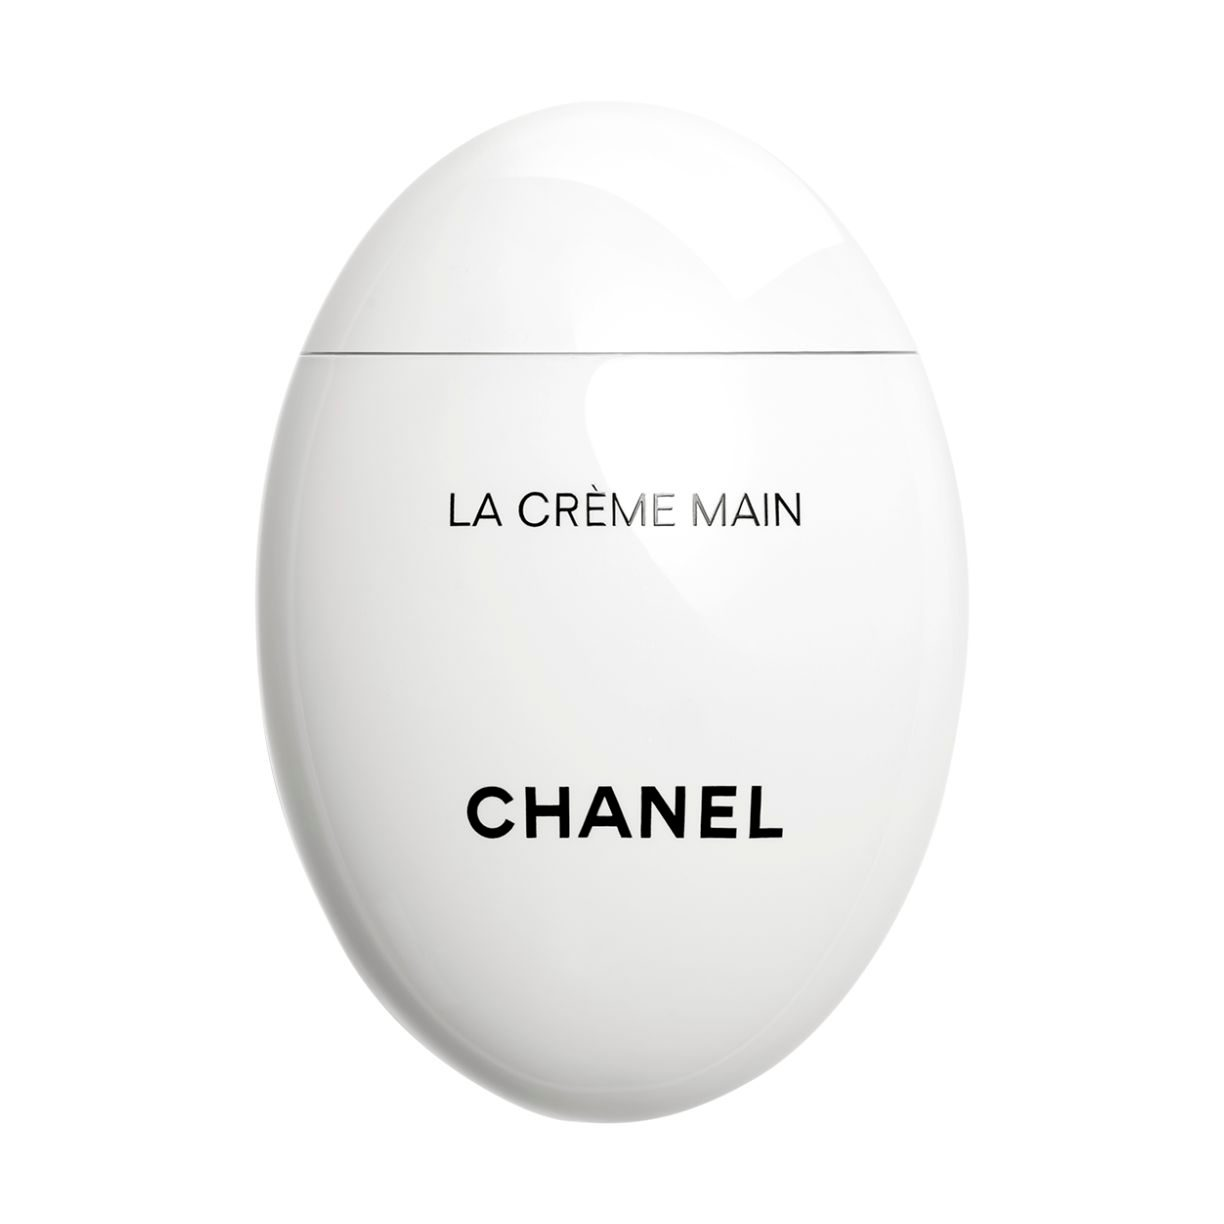 LA CRÈME MAIN SMOOTH-SOFTEN-BRIGHTEN